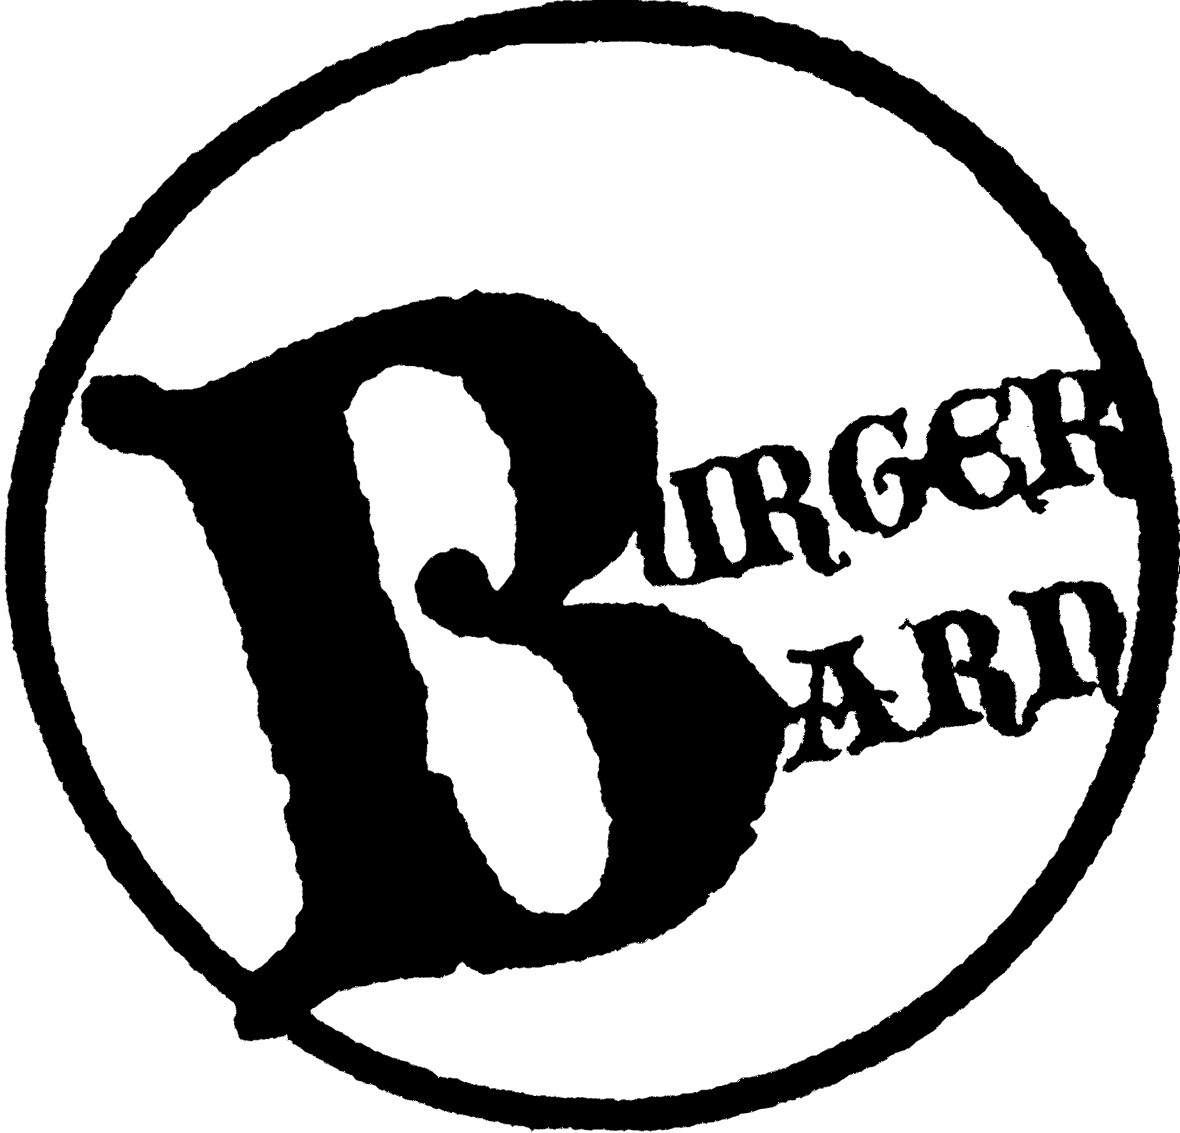 BB LOGO black White.jpg